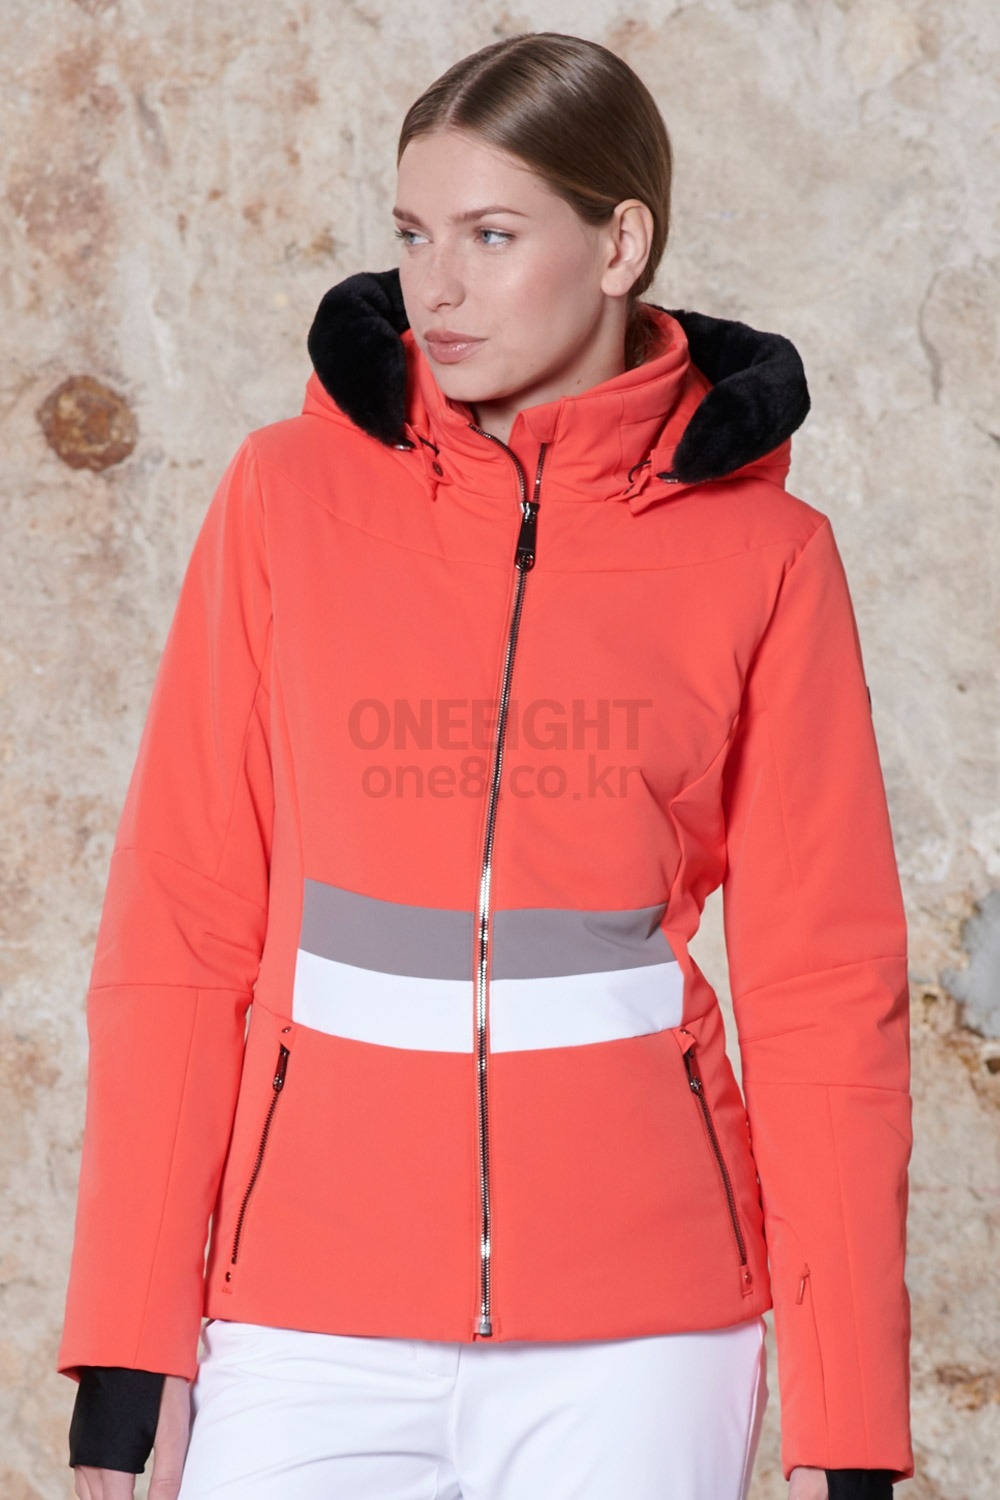 2021 쁘아블랑 여성 스트레치 스키 자켓 2021 POIVRE BLANC_W20-0800-WO/A_WMS STRETCH SKI JACKET_MULTICO ORANGE_B80P005OR_여성/스키복